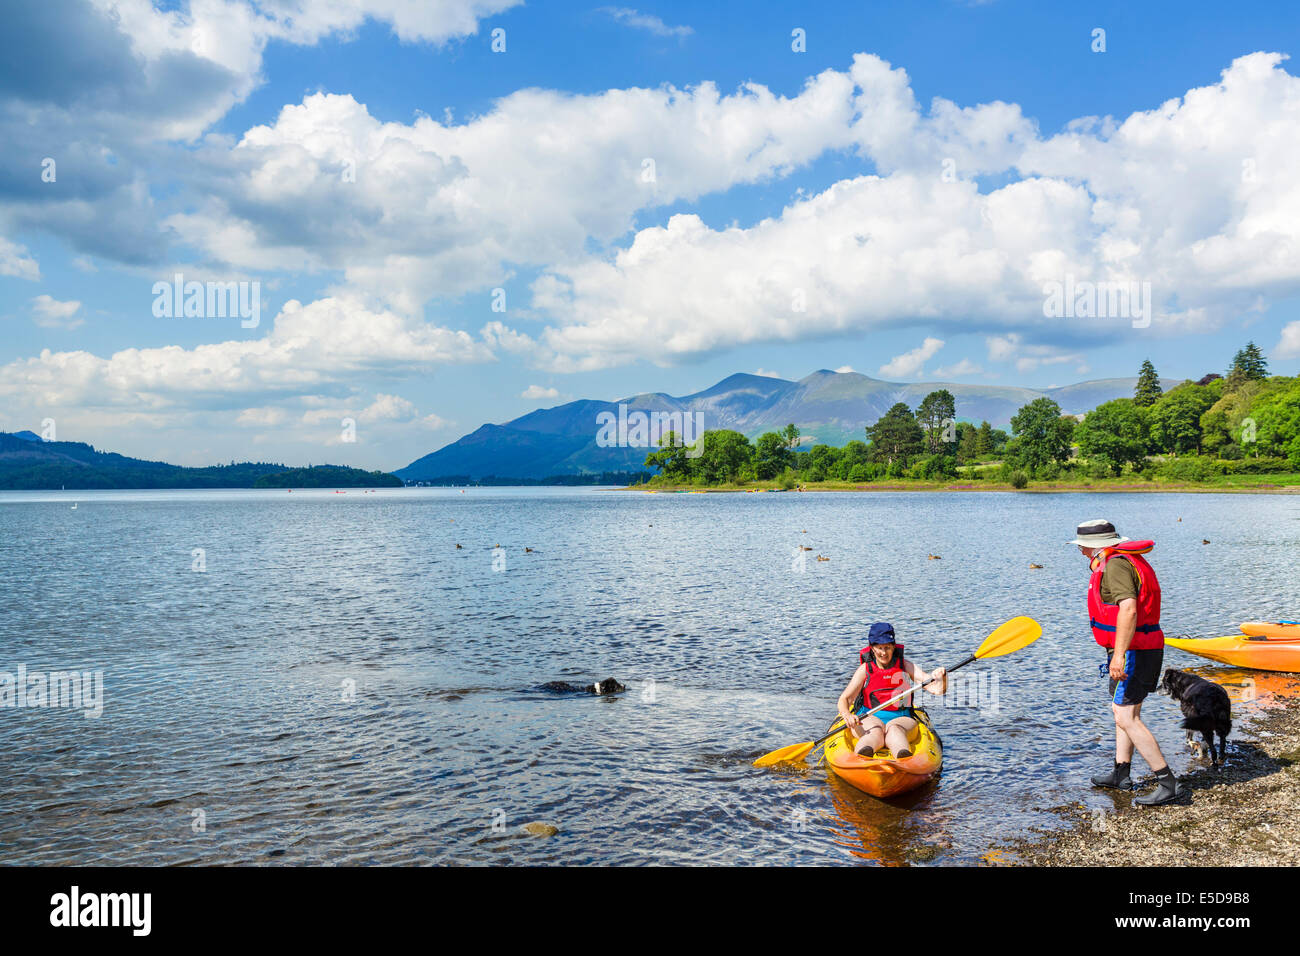 Kayaking on Derwentwater with the Skiddaw massif in the distance, Borrowdale, Lake District, Cumbria, UK - Stock Image